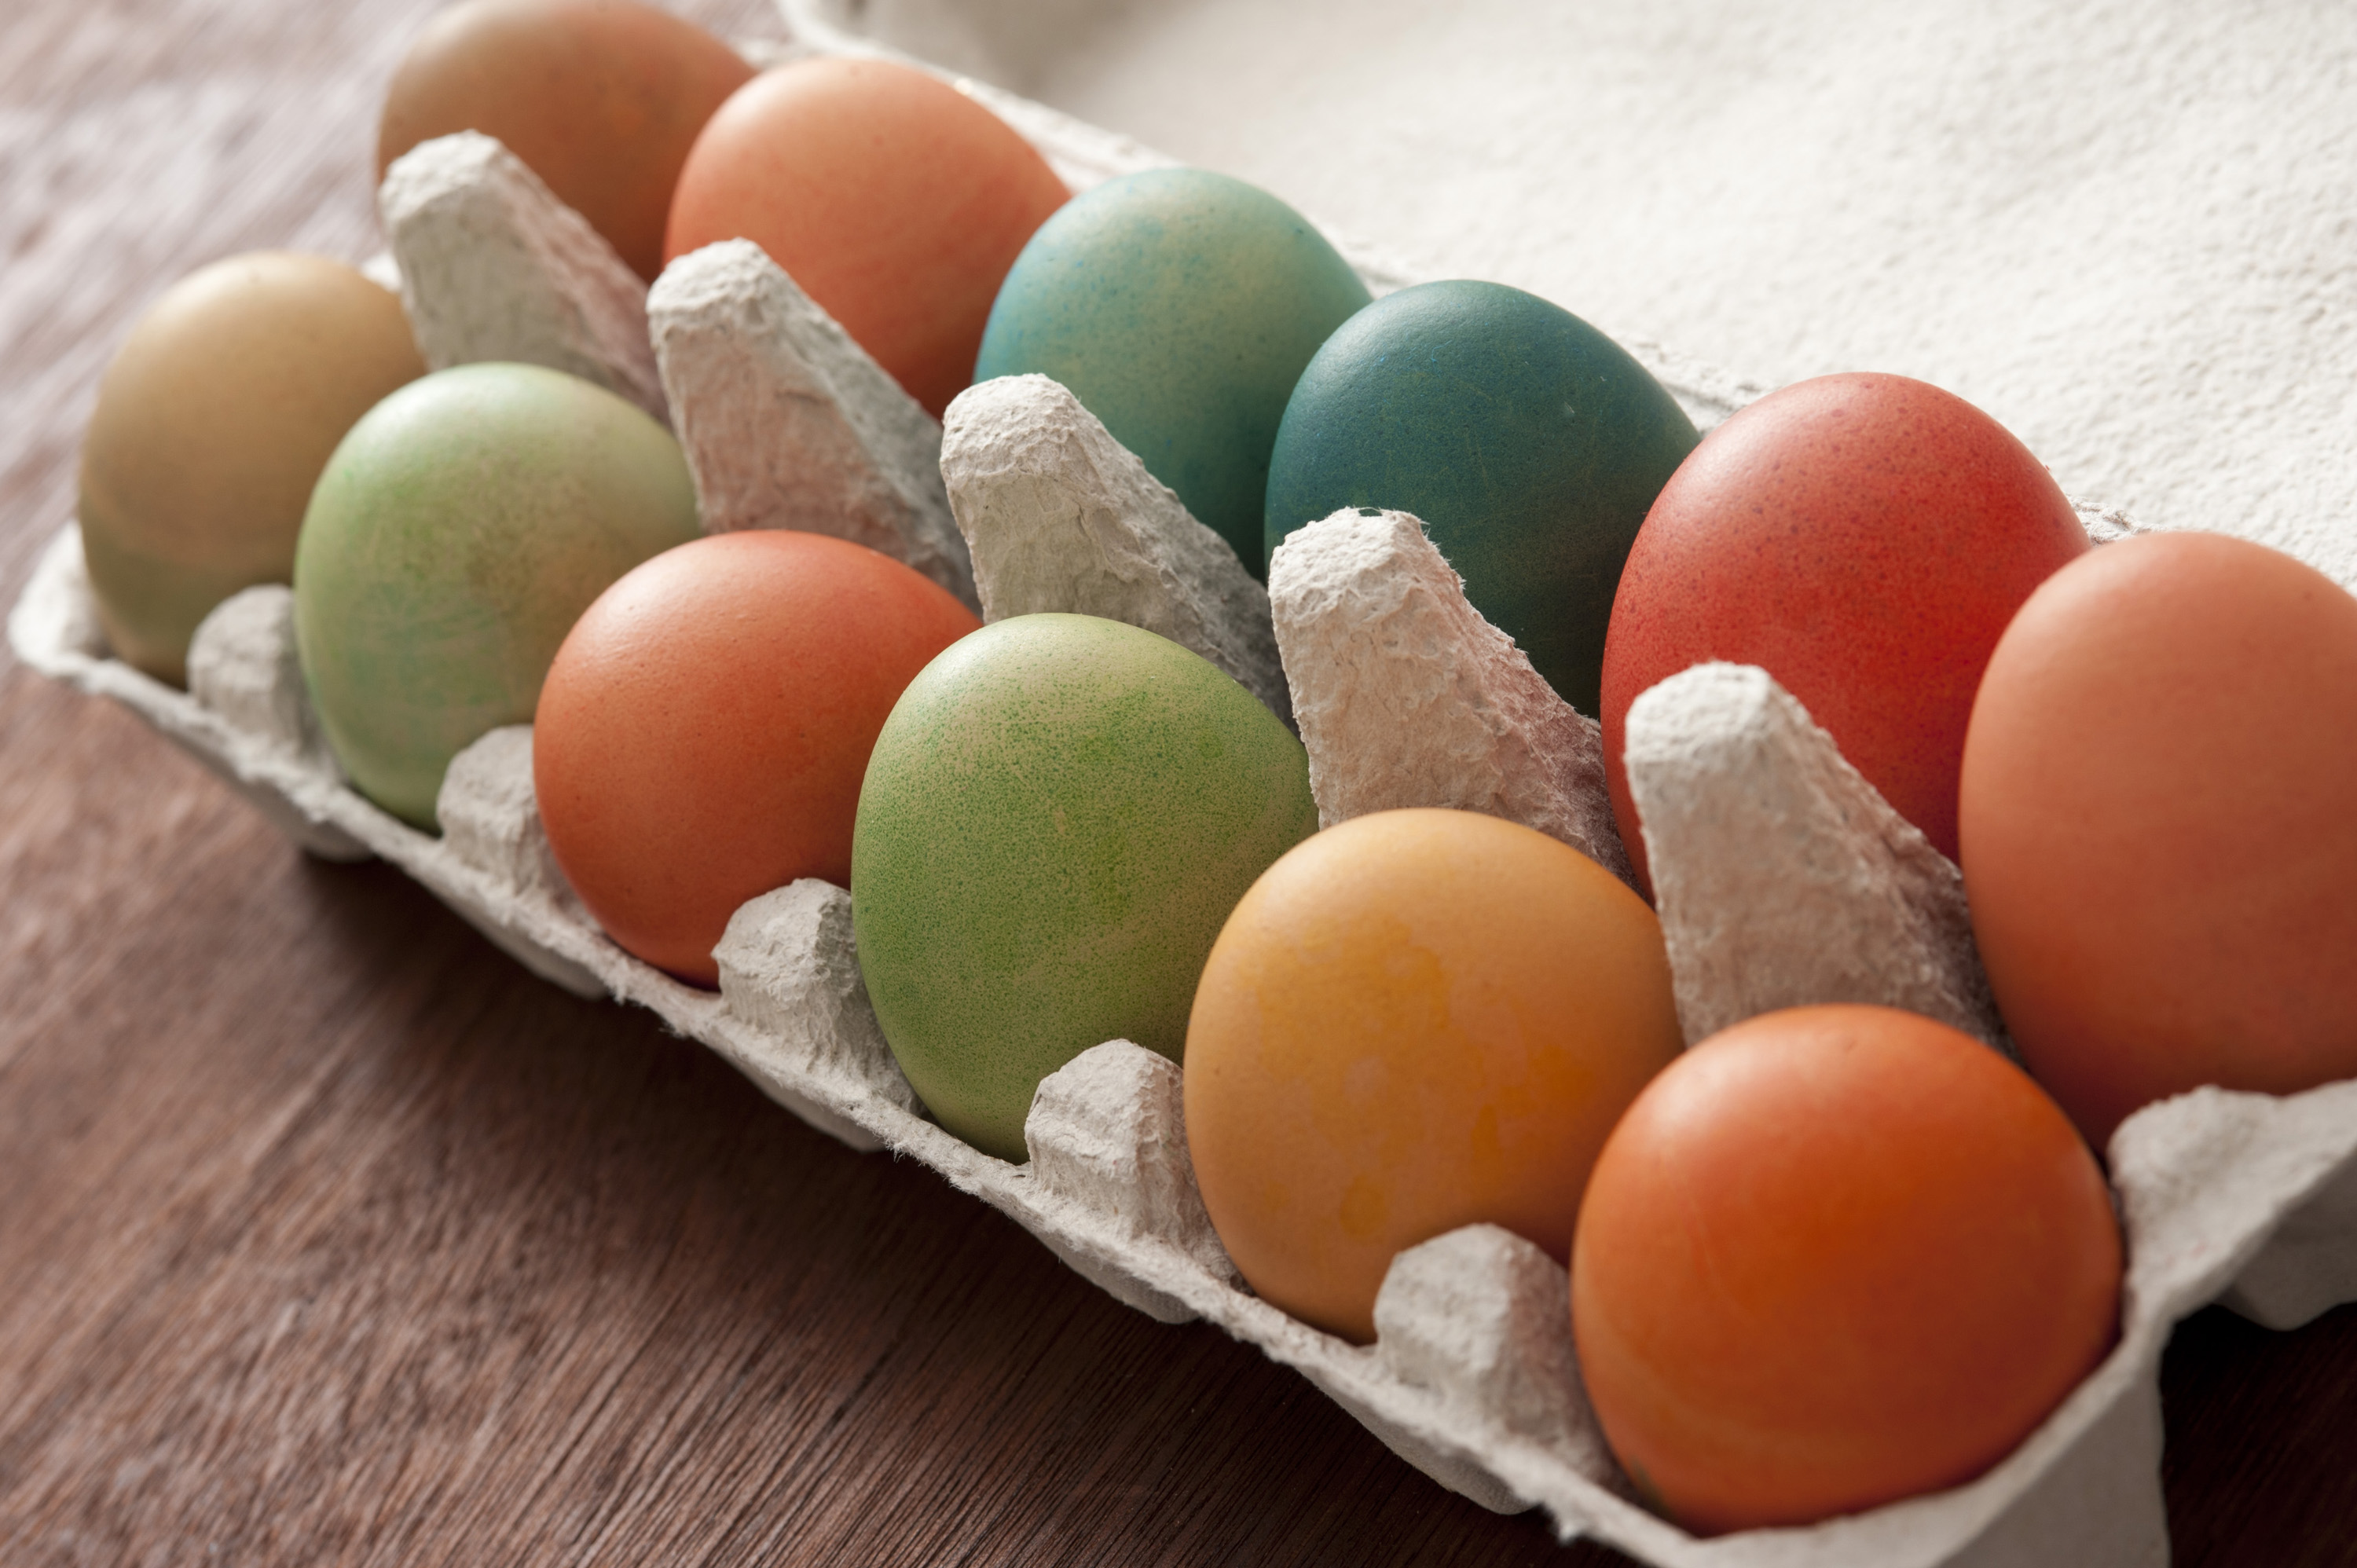 easter_hunt_eggs.jpg - Cardboard carton full of multicolored home dyed boiled Easter eggs for a healthy holiday celebration in a close up view